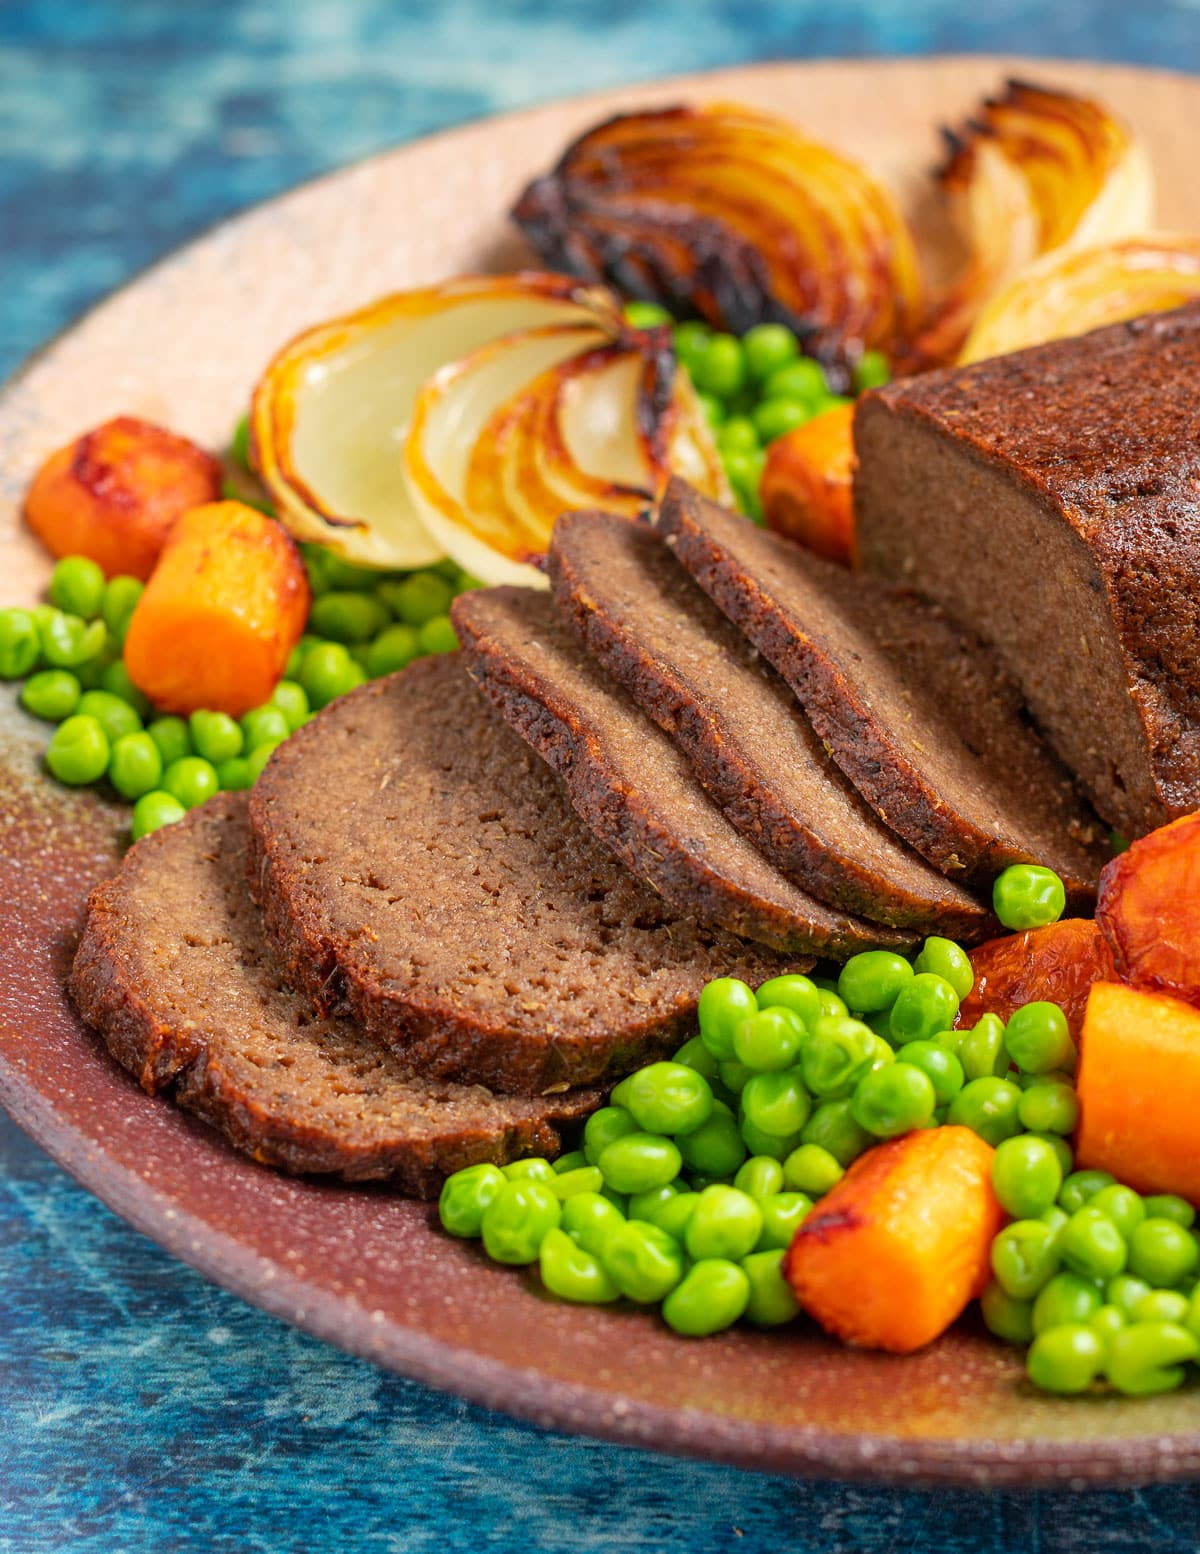 a sliced vegan and gluten-free roast with vegetables